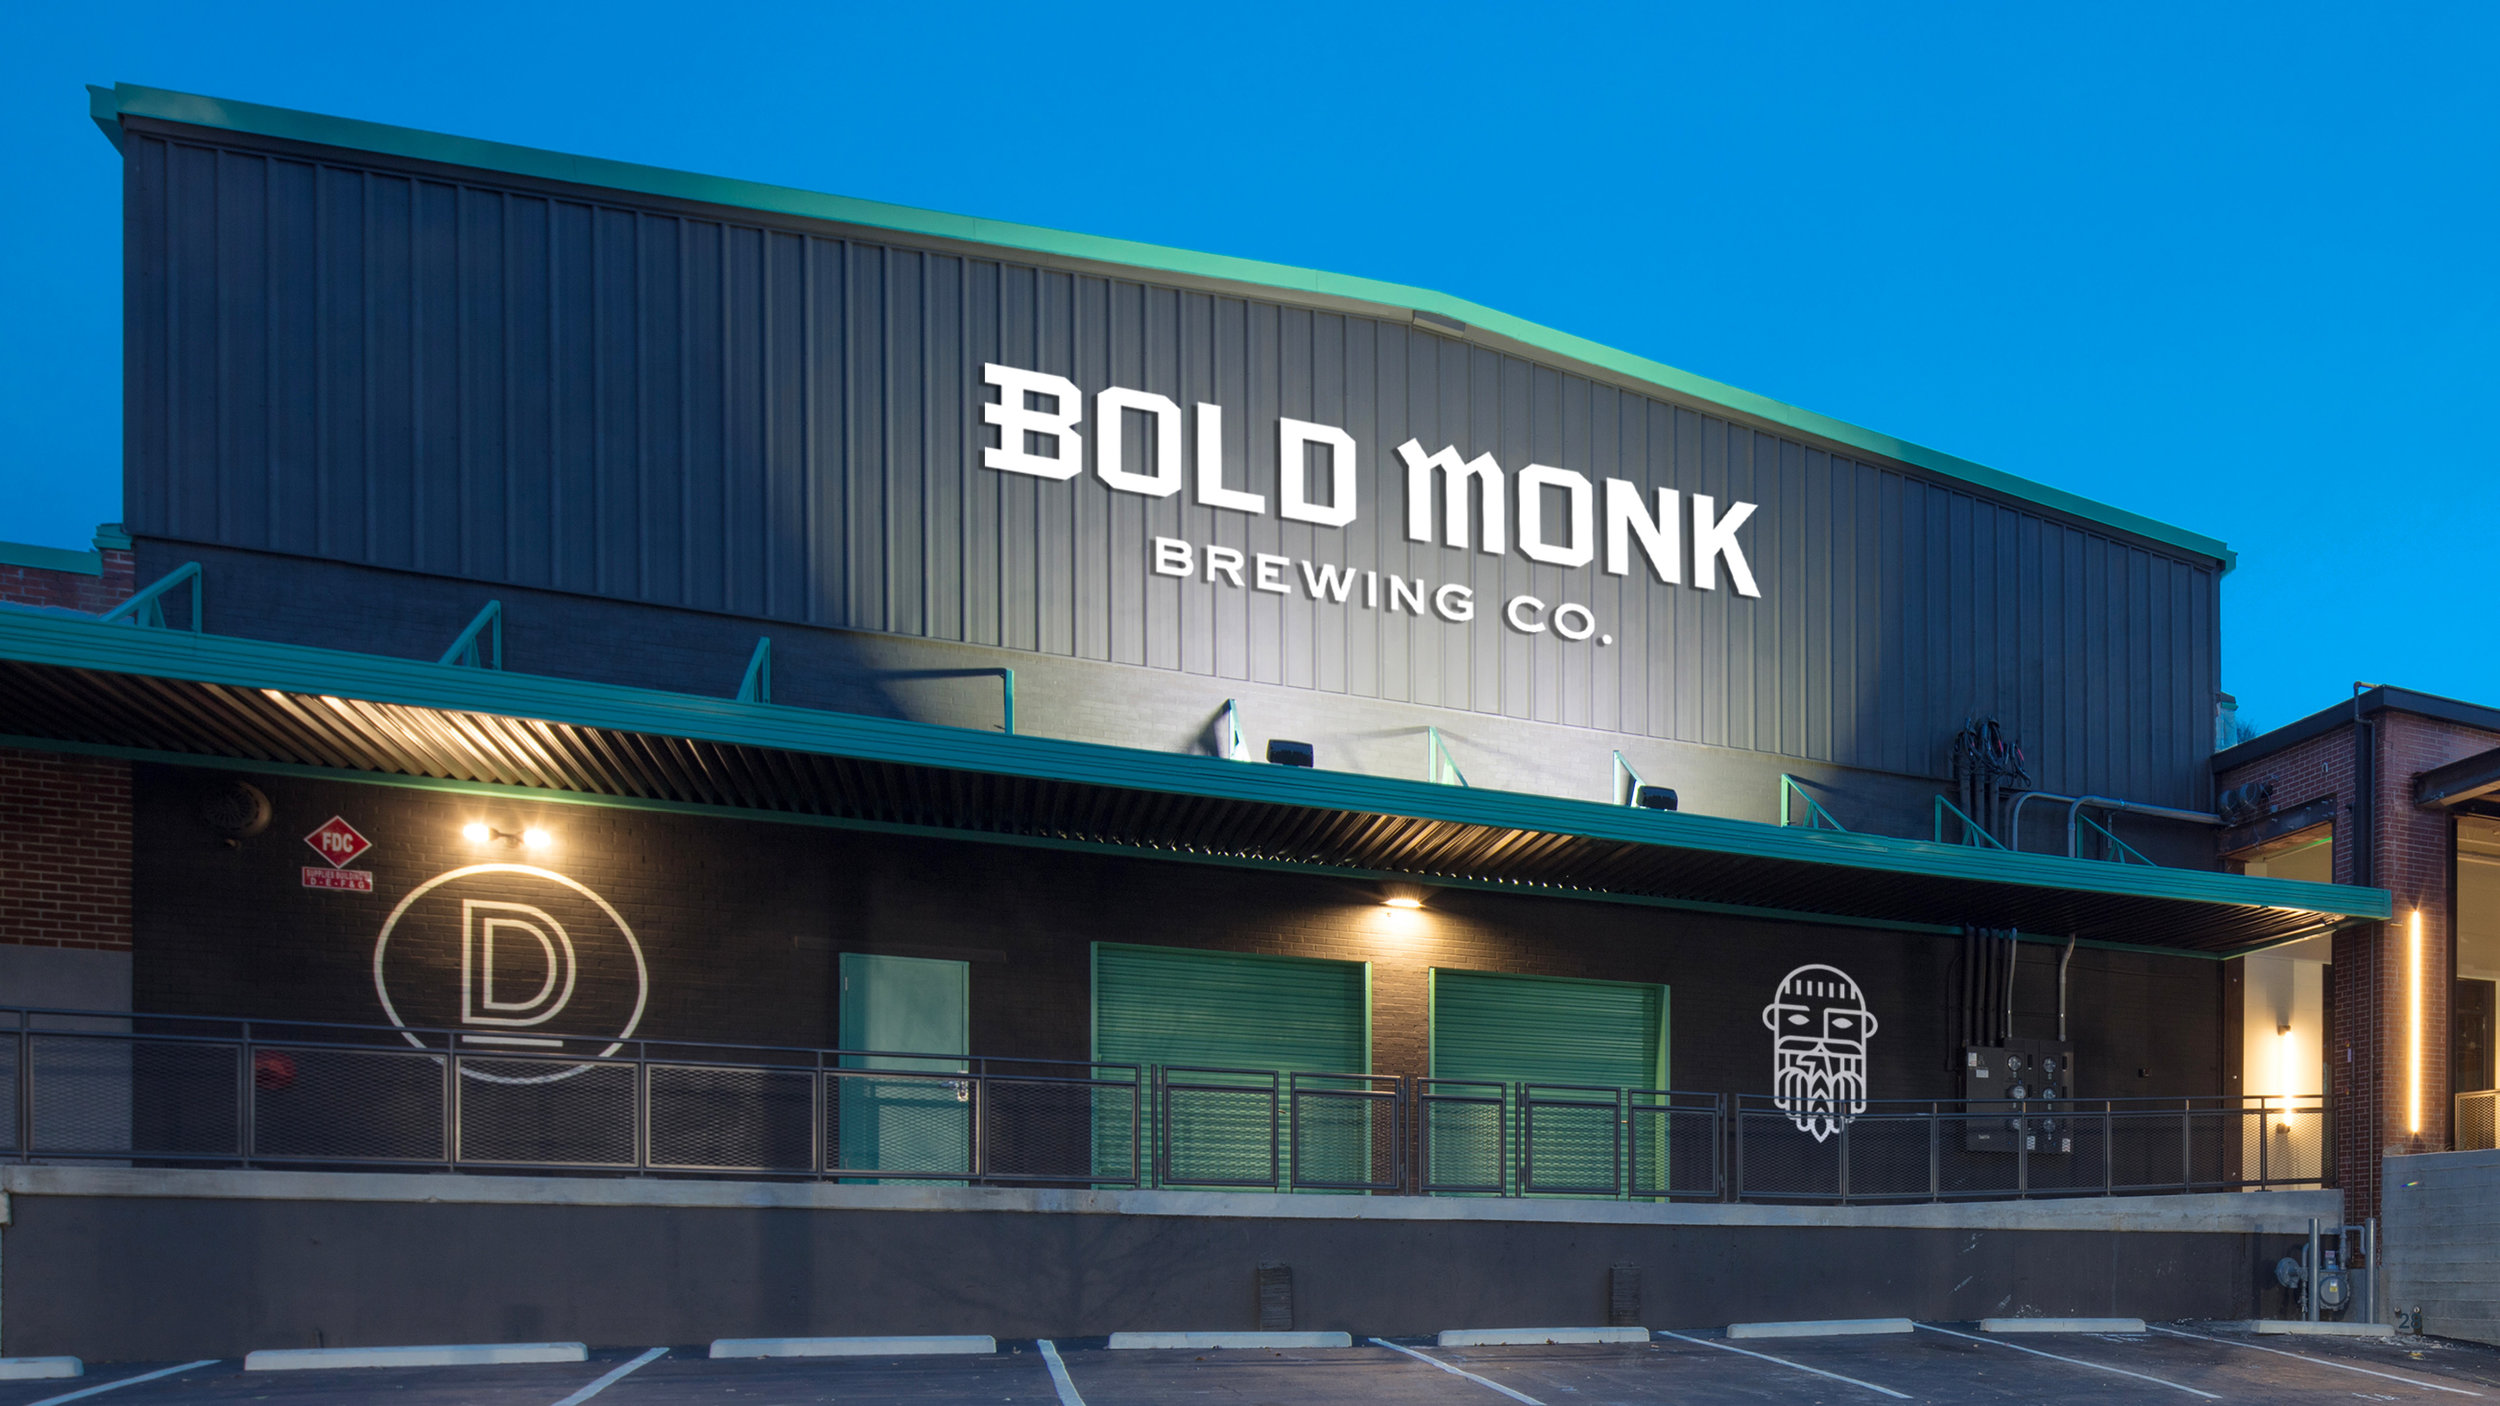 BoldMonk_Building_Signage (1)_Page_1.jpg